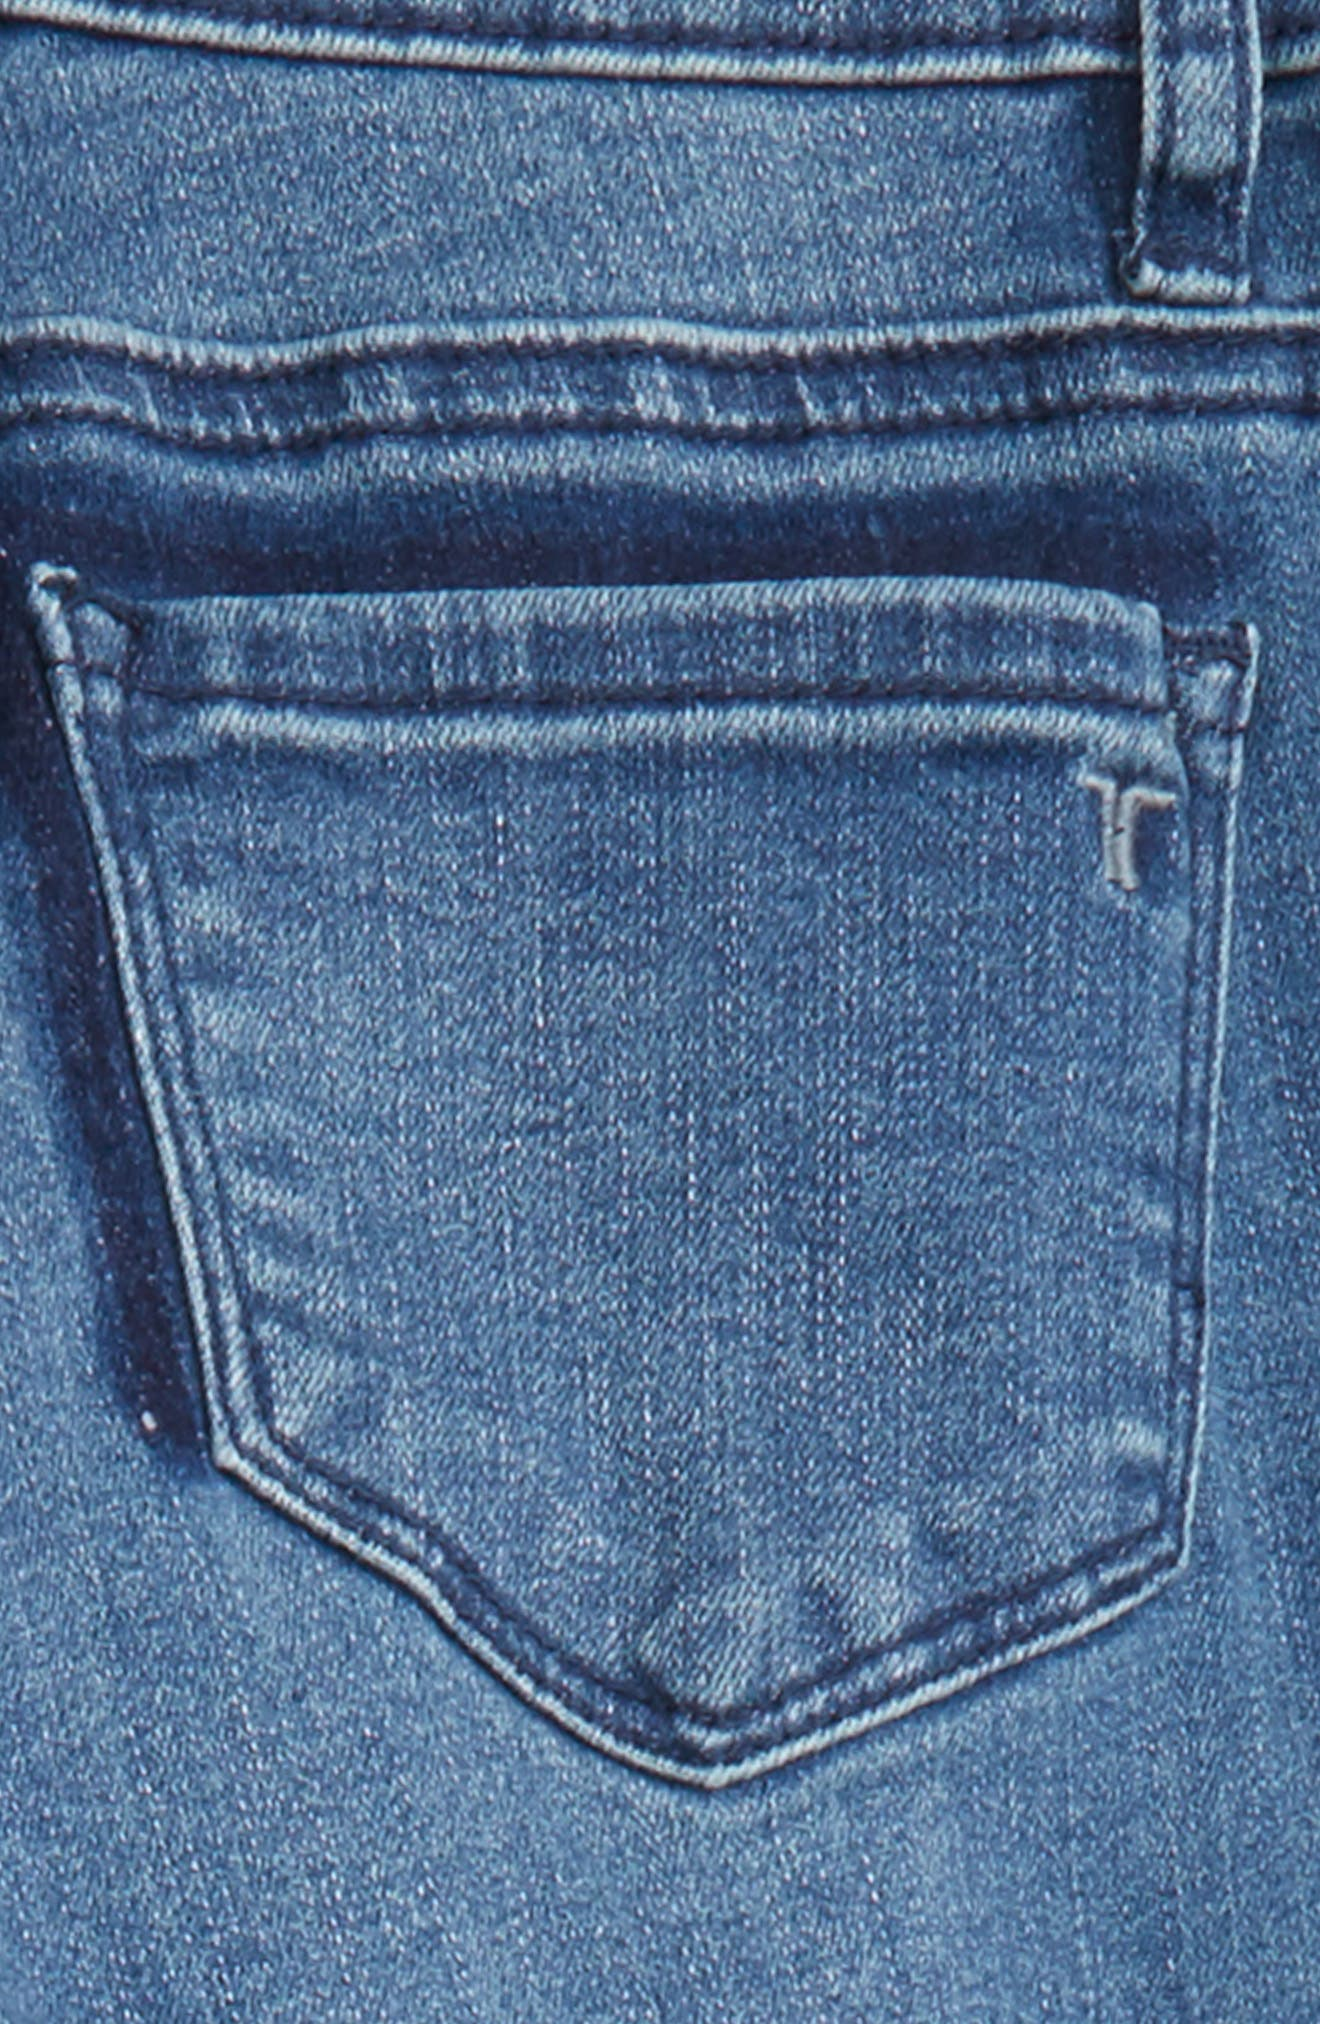 Crop Skinny Jeans,                             Alternate thumbnail 3, color,                             407